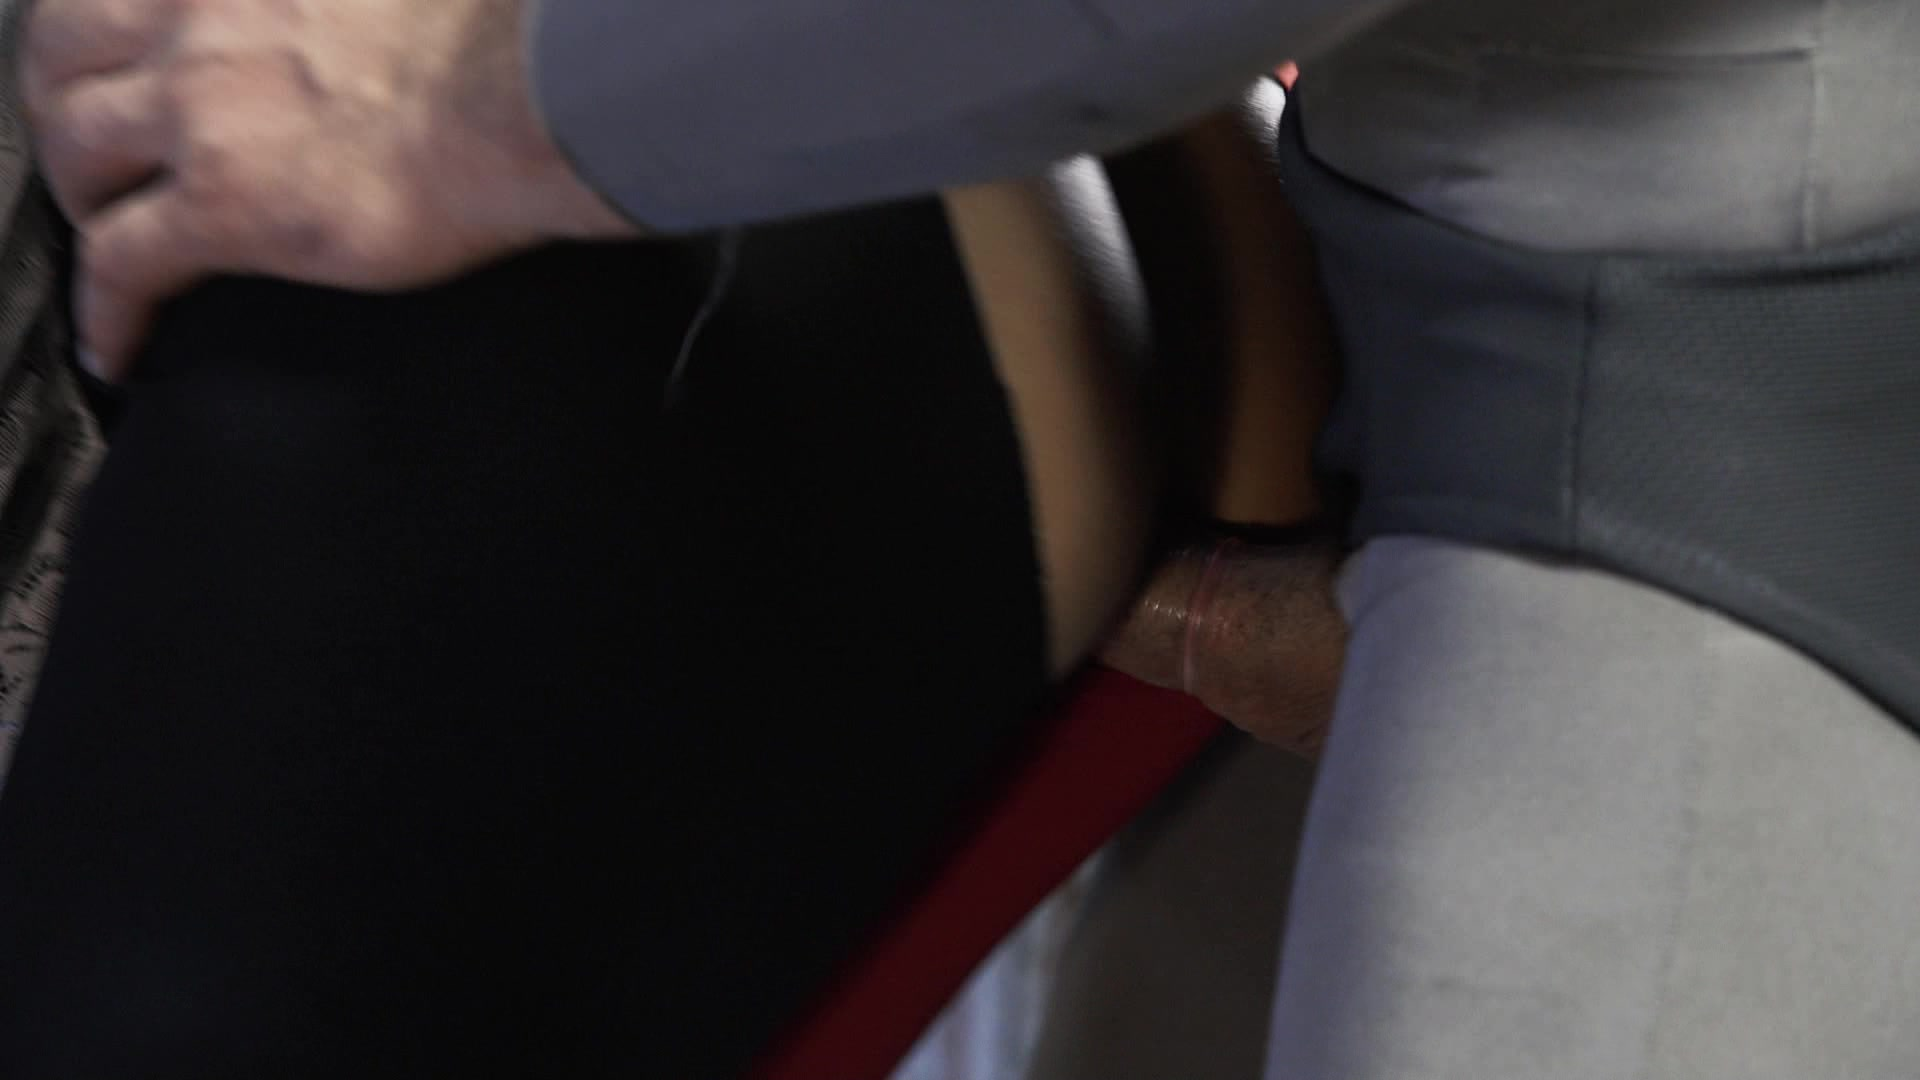 Scene with Kleio Valentien - image 20 out of 20